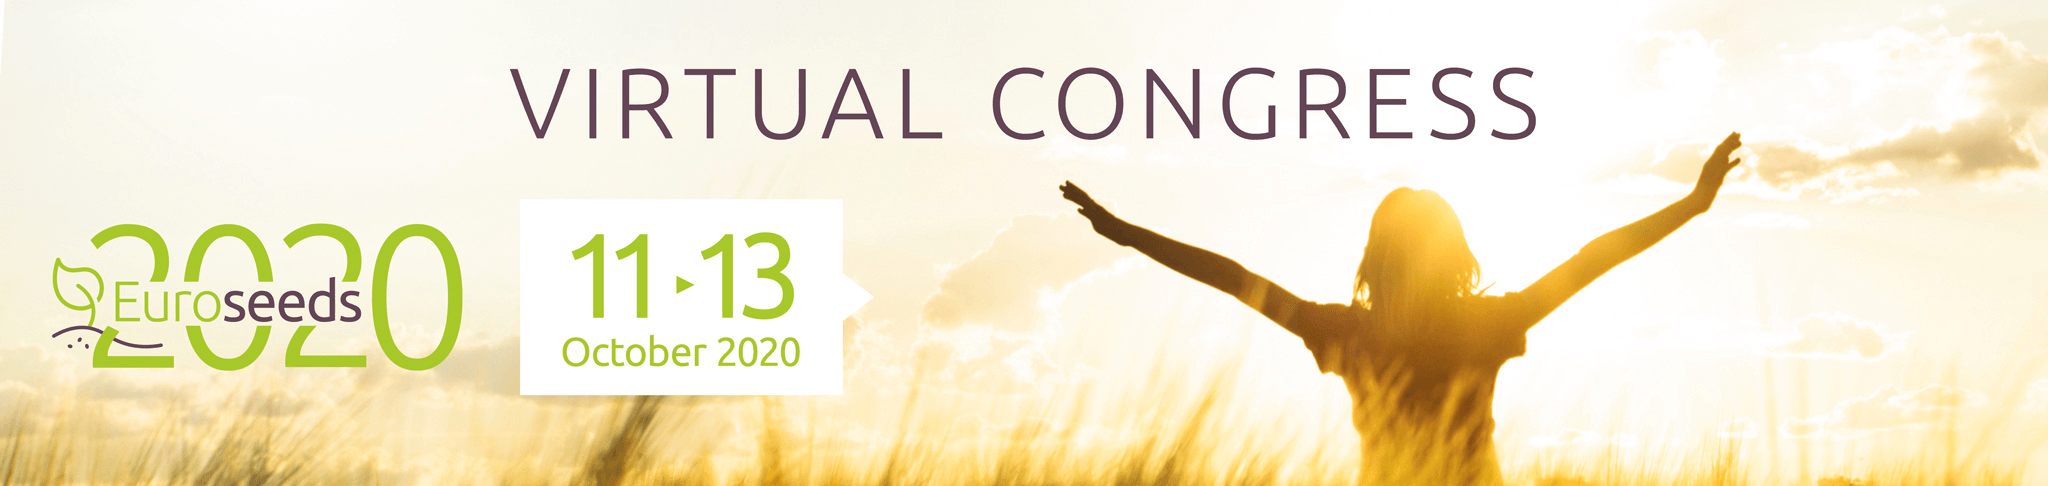 Euroseeds Virtual Congress 2020 - Online - Sunday 11  › Tuesday 13 October 2020